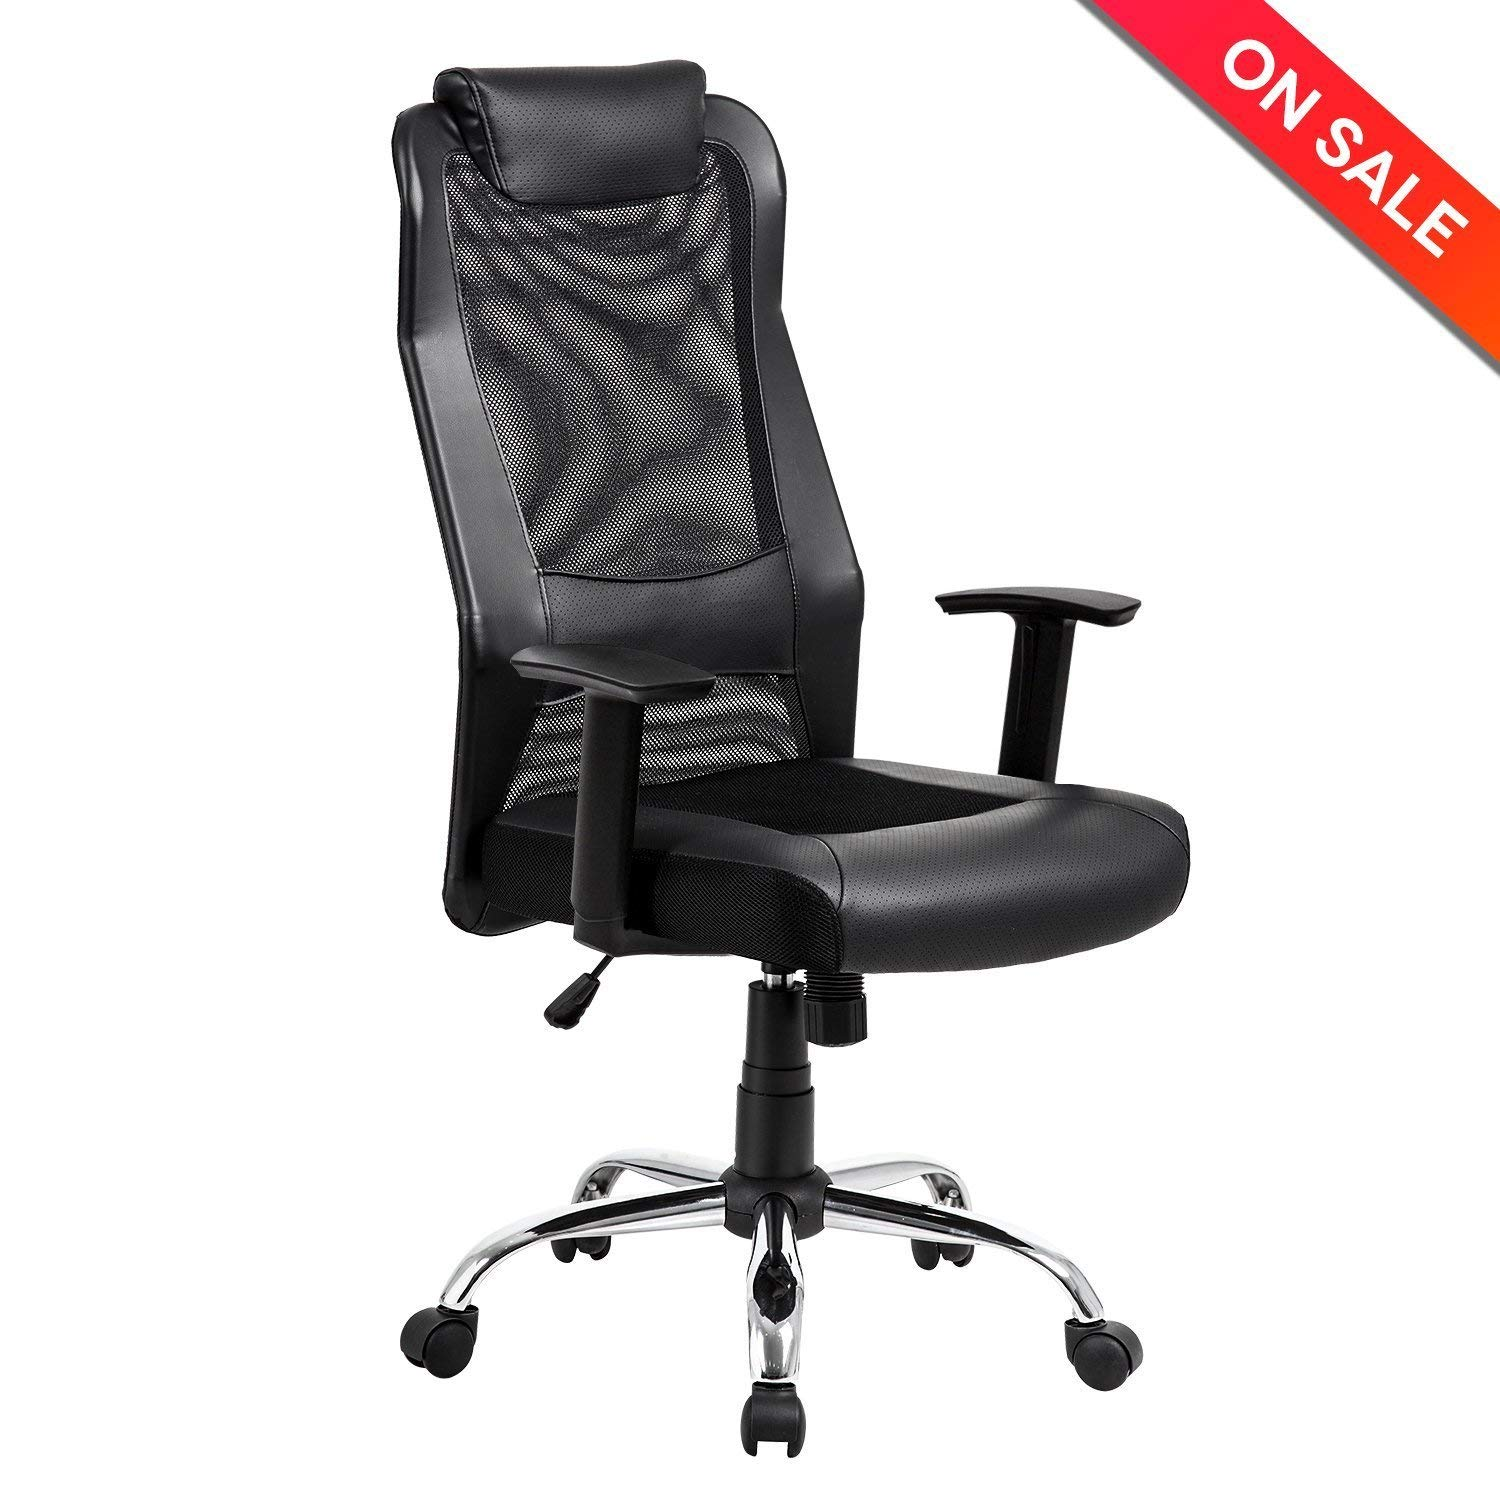 Fabulous Kadirya Mesh Office Chair High Back Pu Leather Home Computer Desk Chair Executive Ergonomic Swivel Chair Padded Headrest Lumbar Support Adjustable Home Interior And Landscaping Transignezvosmurscom